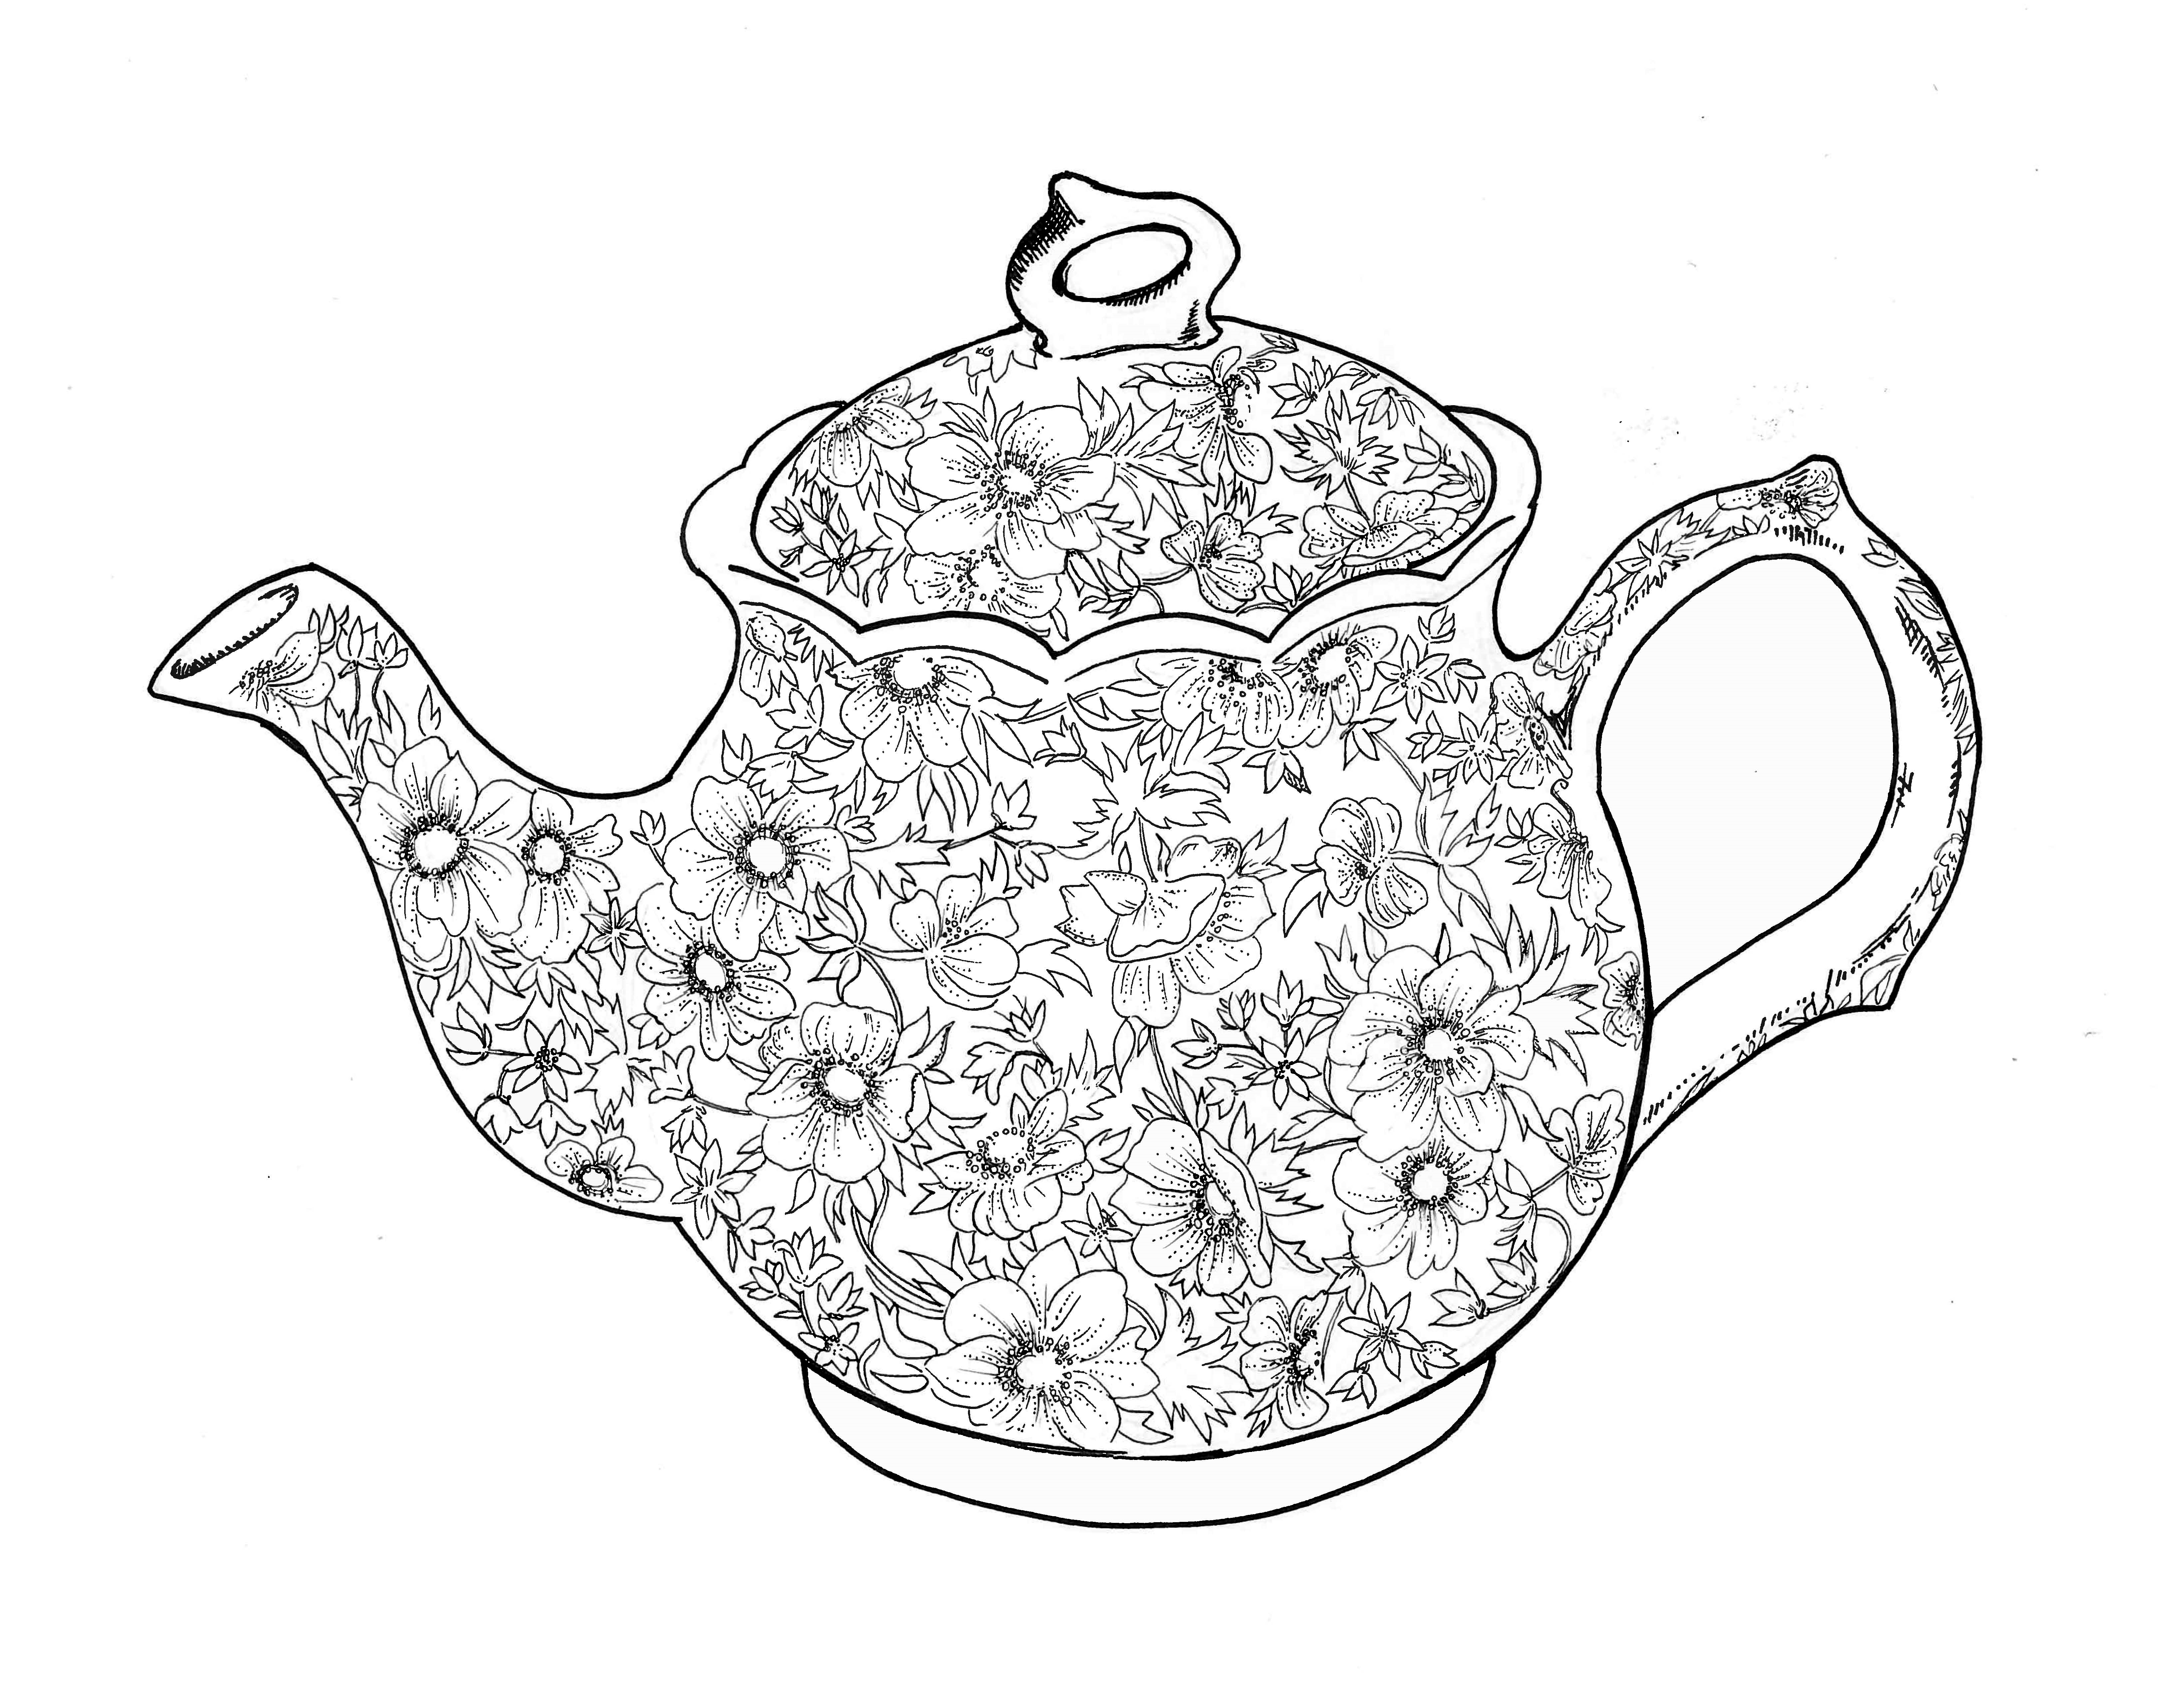 Free Teapot Coloring Book, Download Free Clip Art, Free Clip Art On - Free Teapot Printable